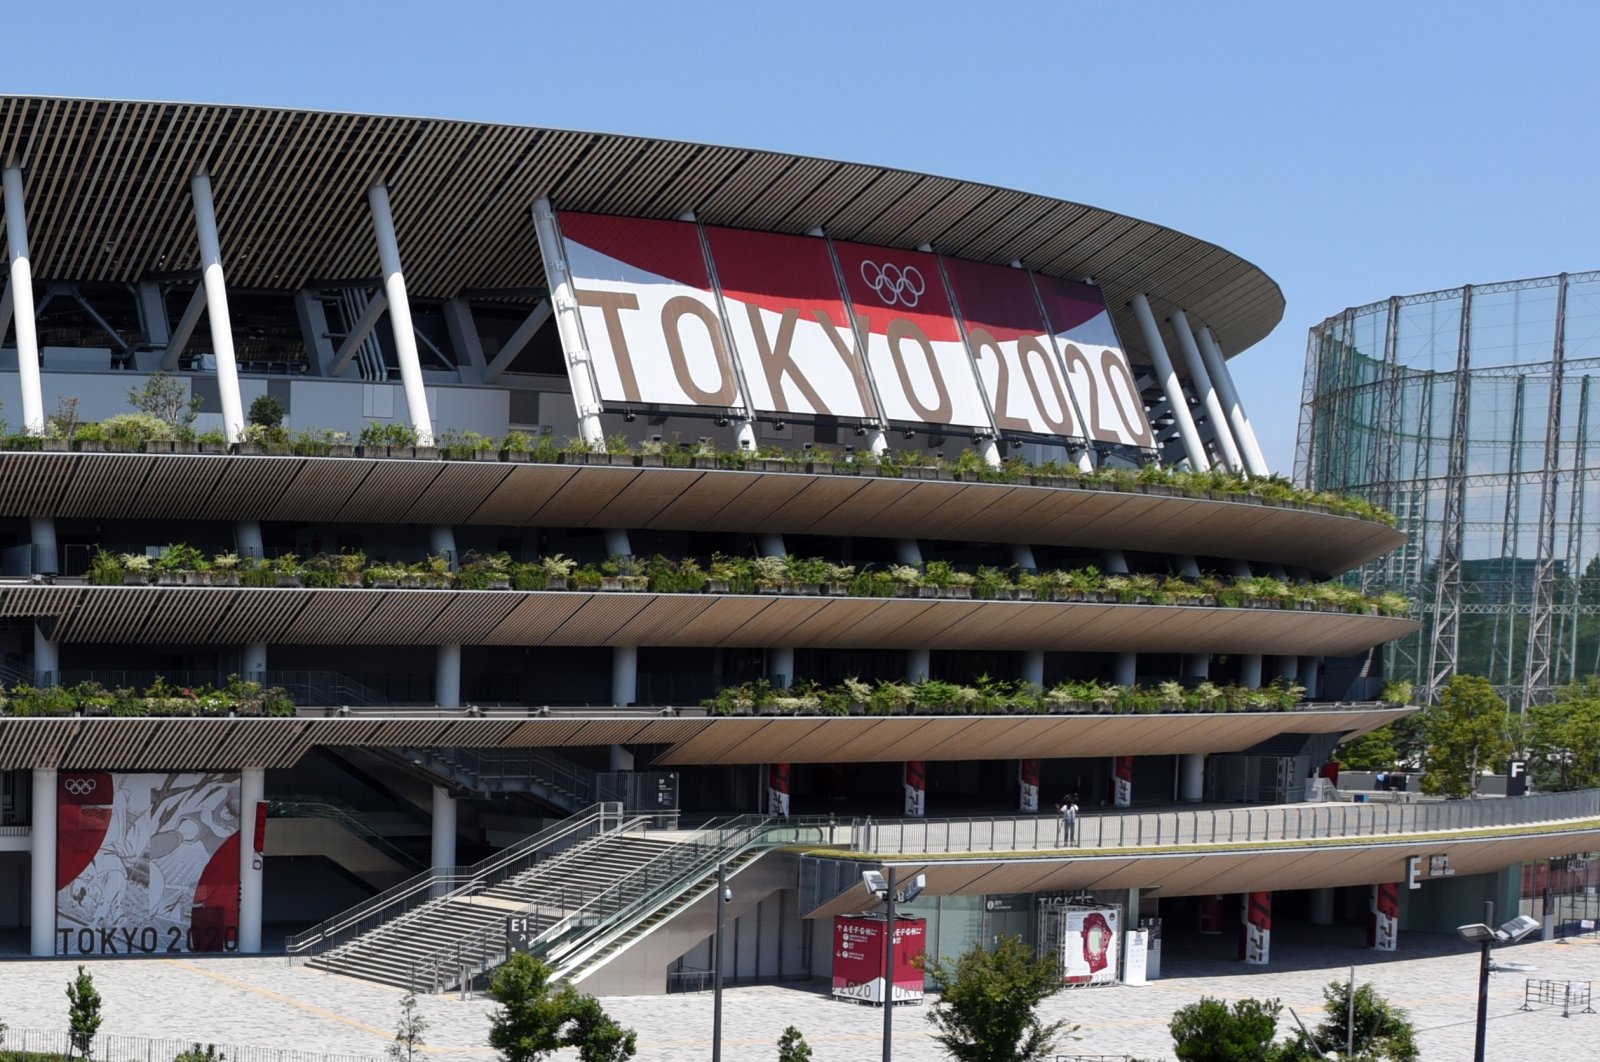 A general view of the Japan National Stadium, the main venue of the Tokyo 2020 Olympics and Paralympics, in Tokyo, Japan, July 22, 2021. (EPA Photo)